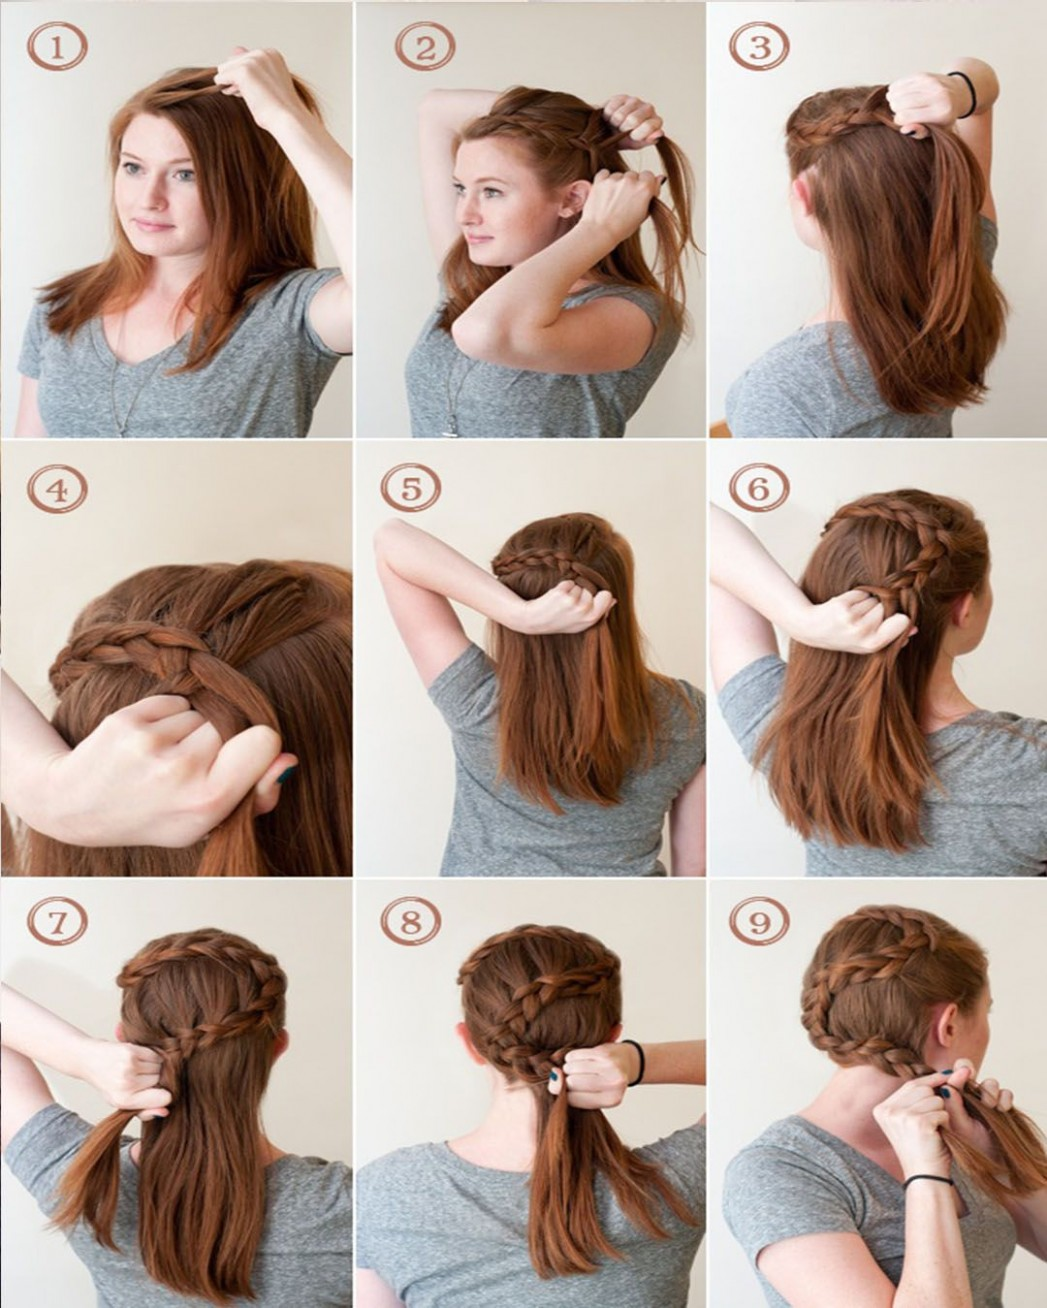 Hairstyles With Easy Step By Step Braids And Stylish Tumblr Hair Hairstyles For Long Hair Step By Step